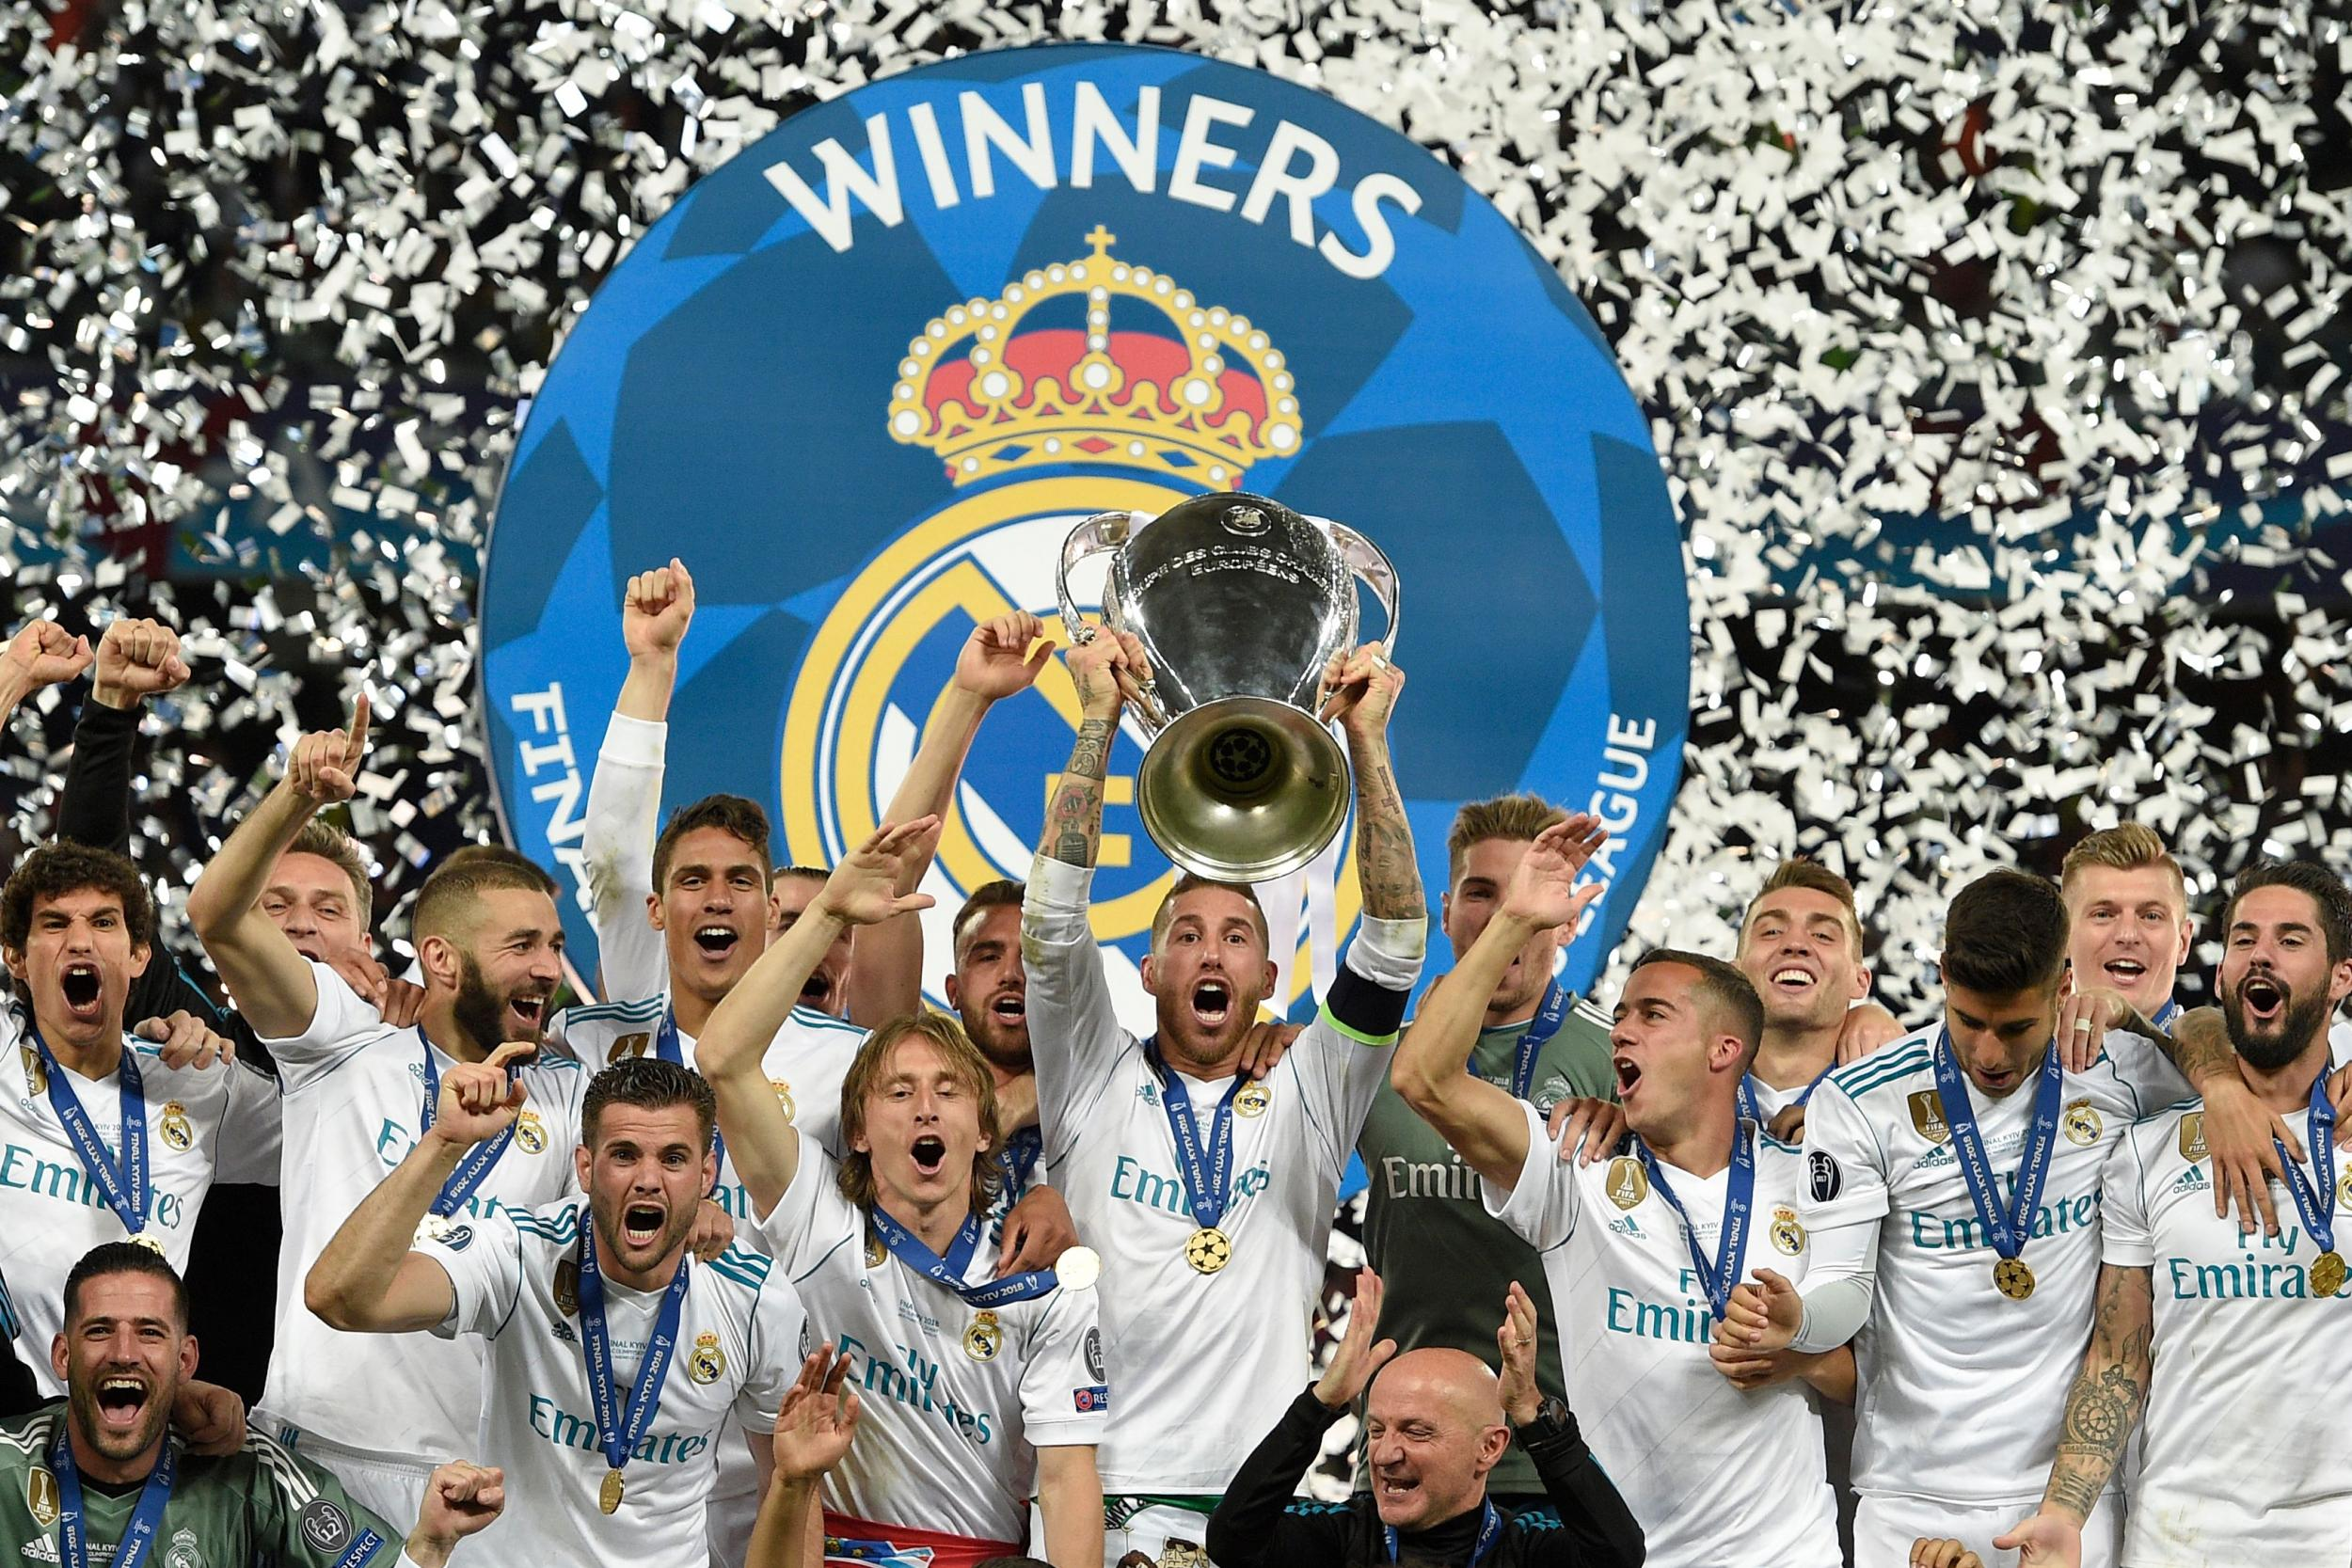 Champions League power rankings: Who will win this year's competition?